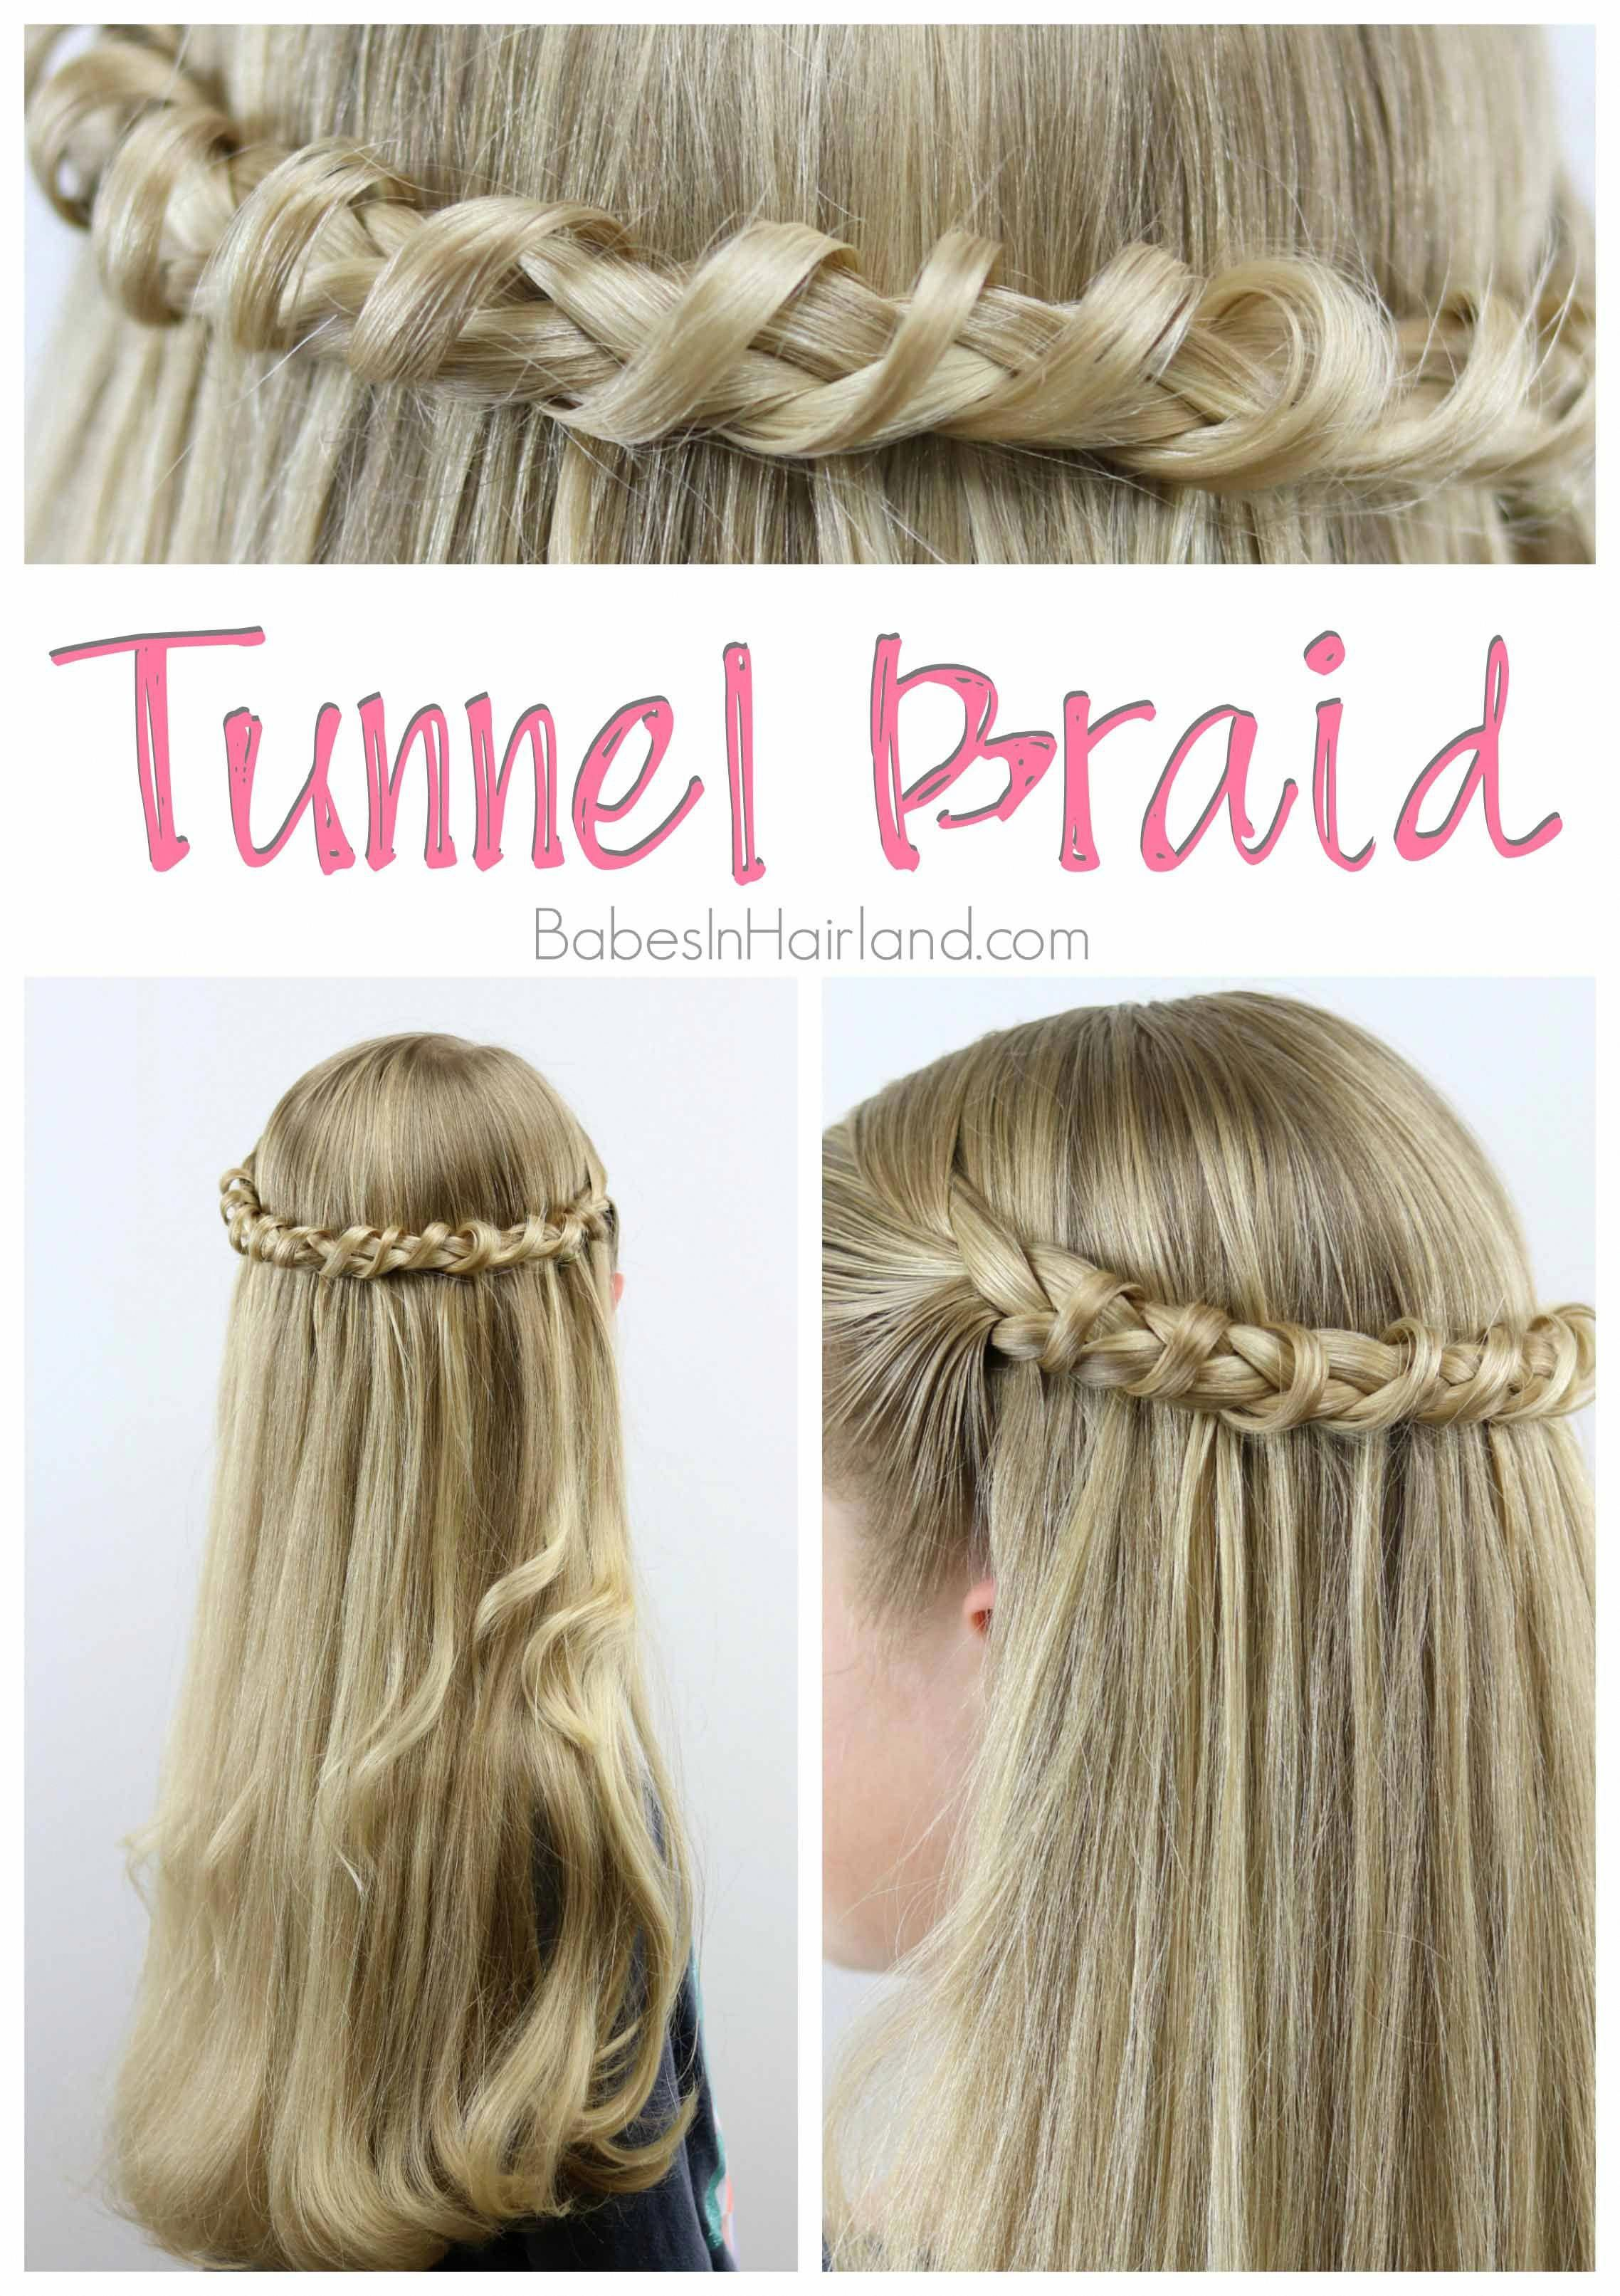 This Tunnel Braid Is Such A Unique But Easy Hairstyle From